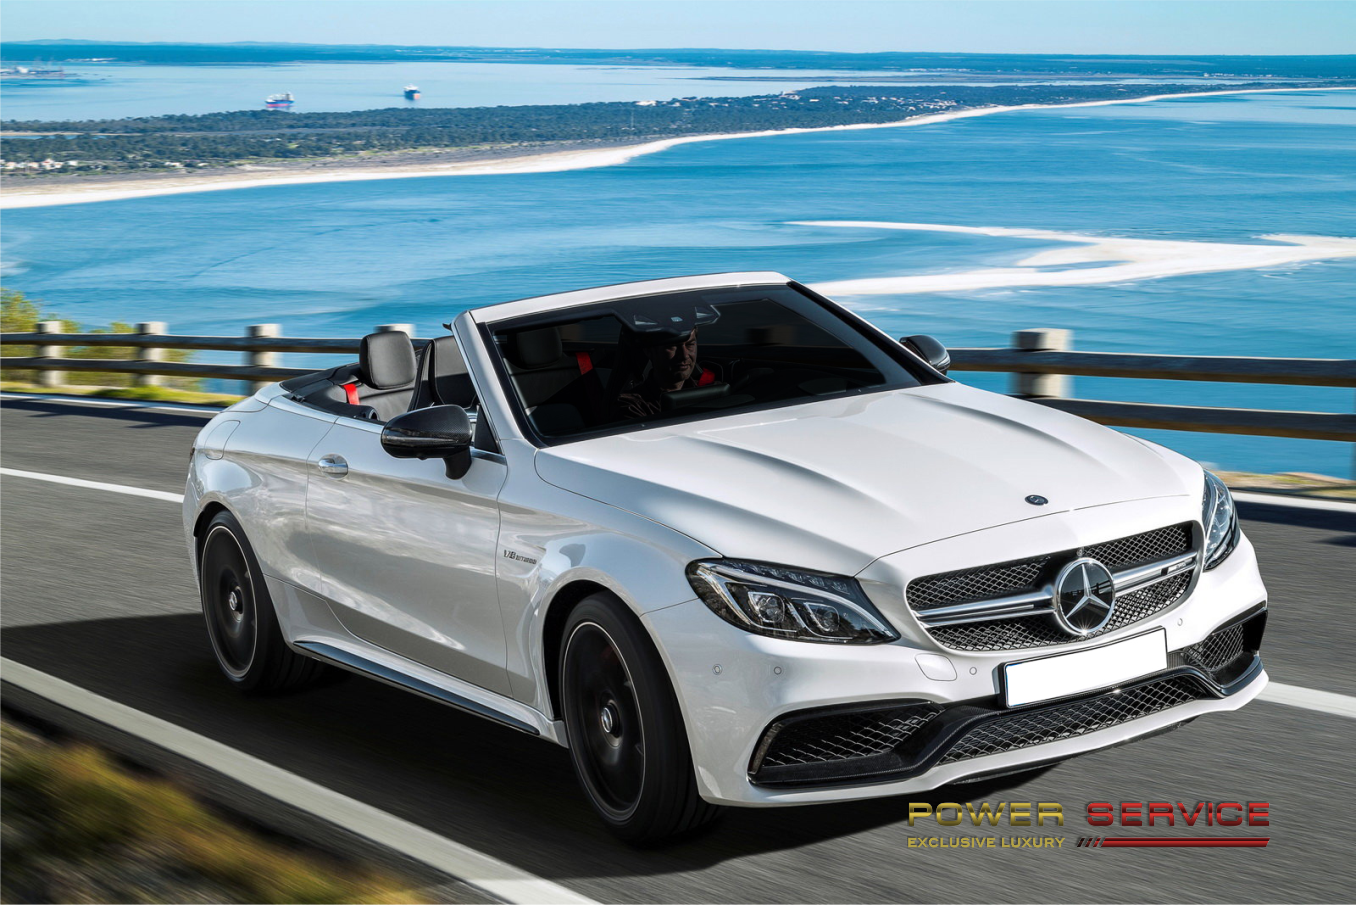 Rent Mercedes C63 AMG S Cabrio in Forte dei Marmi - Power Service Luxury Car Hire in Italy and Europe